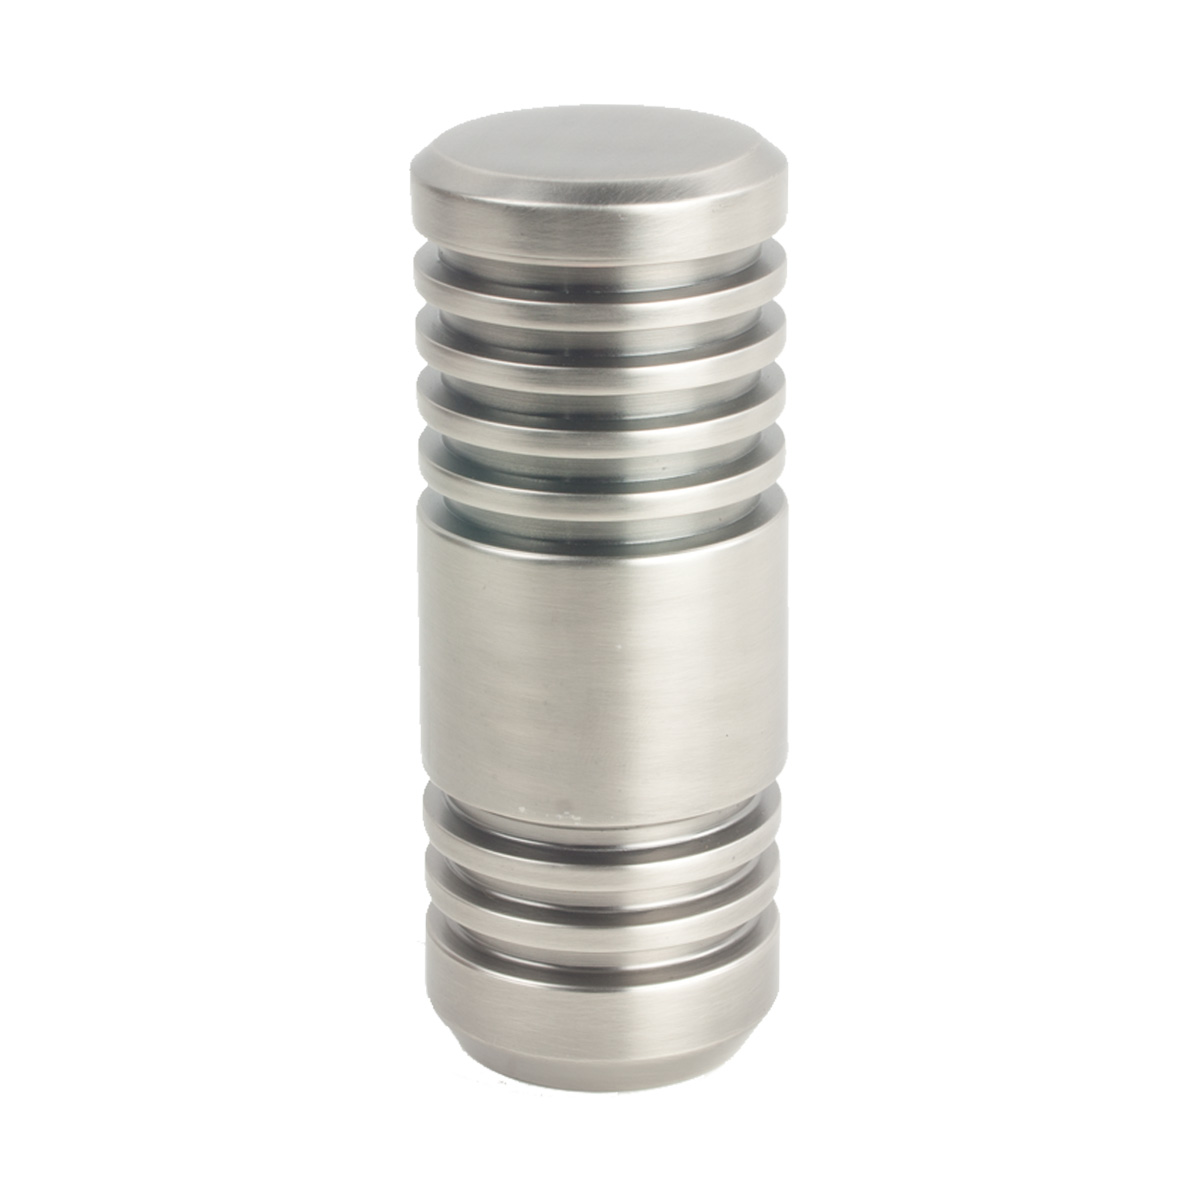 Cylinder Finial 3 Pewter